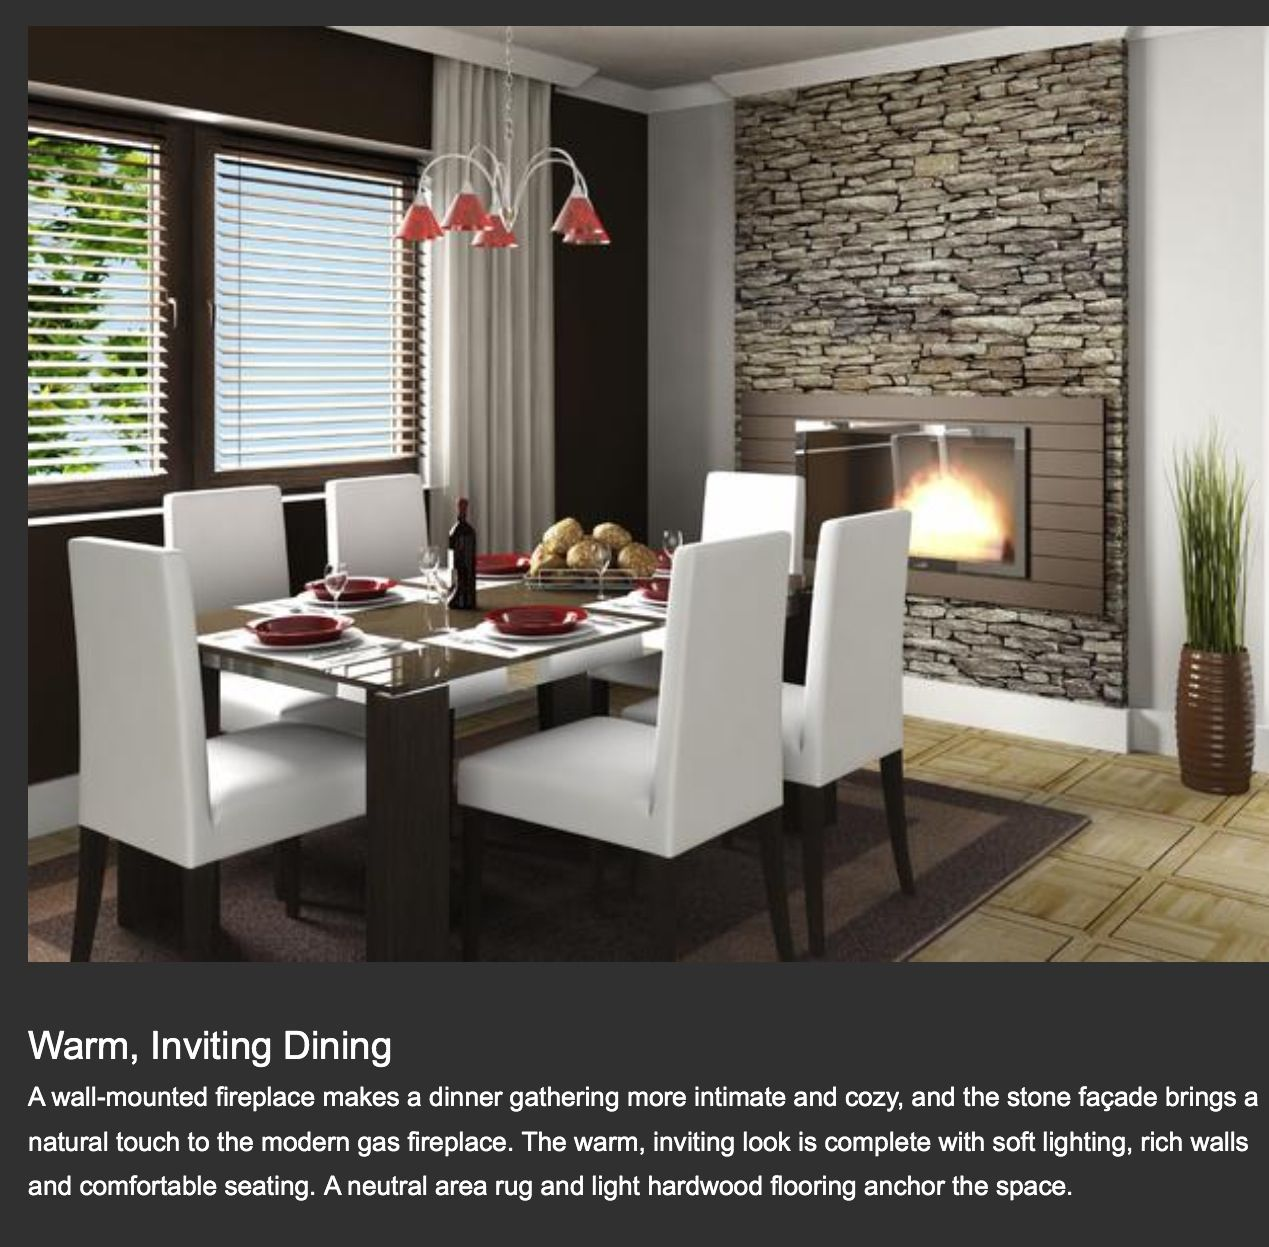 Gas Fireplace In 2019 Dining Room Design Dinner Room Home Decor